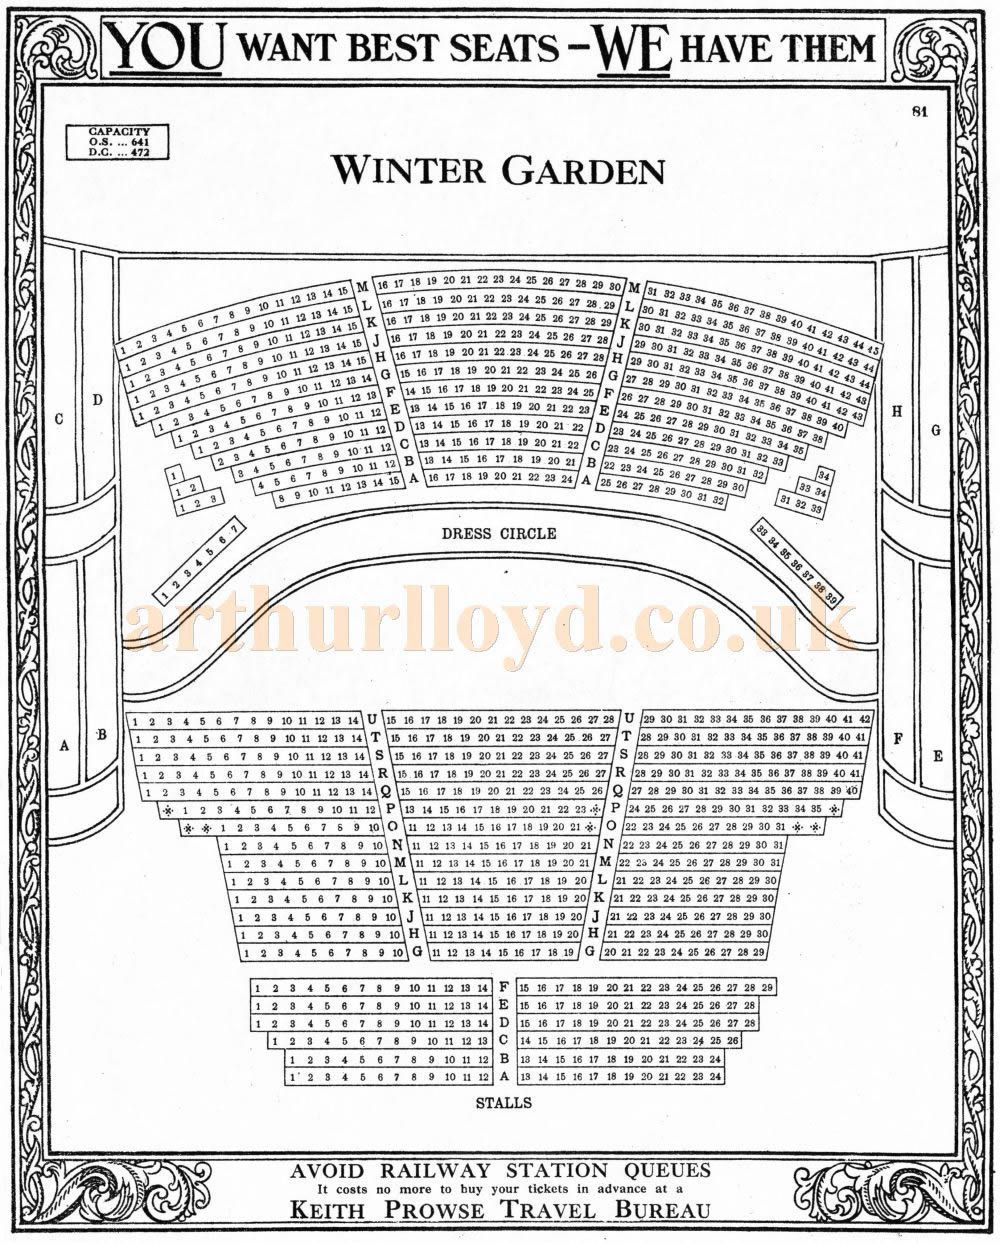 A Seating Plan for the Winter Garden Theatre, Drury Lane from the pre-computerised days of manual ticketing - Courtesy Martin Clark and Doreen Gould.